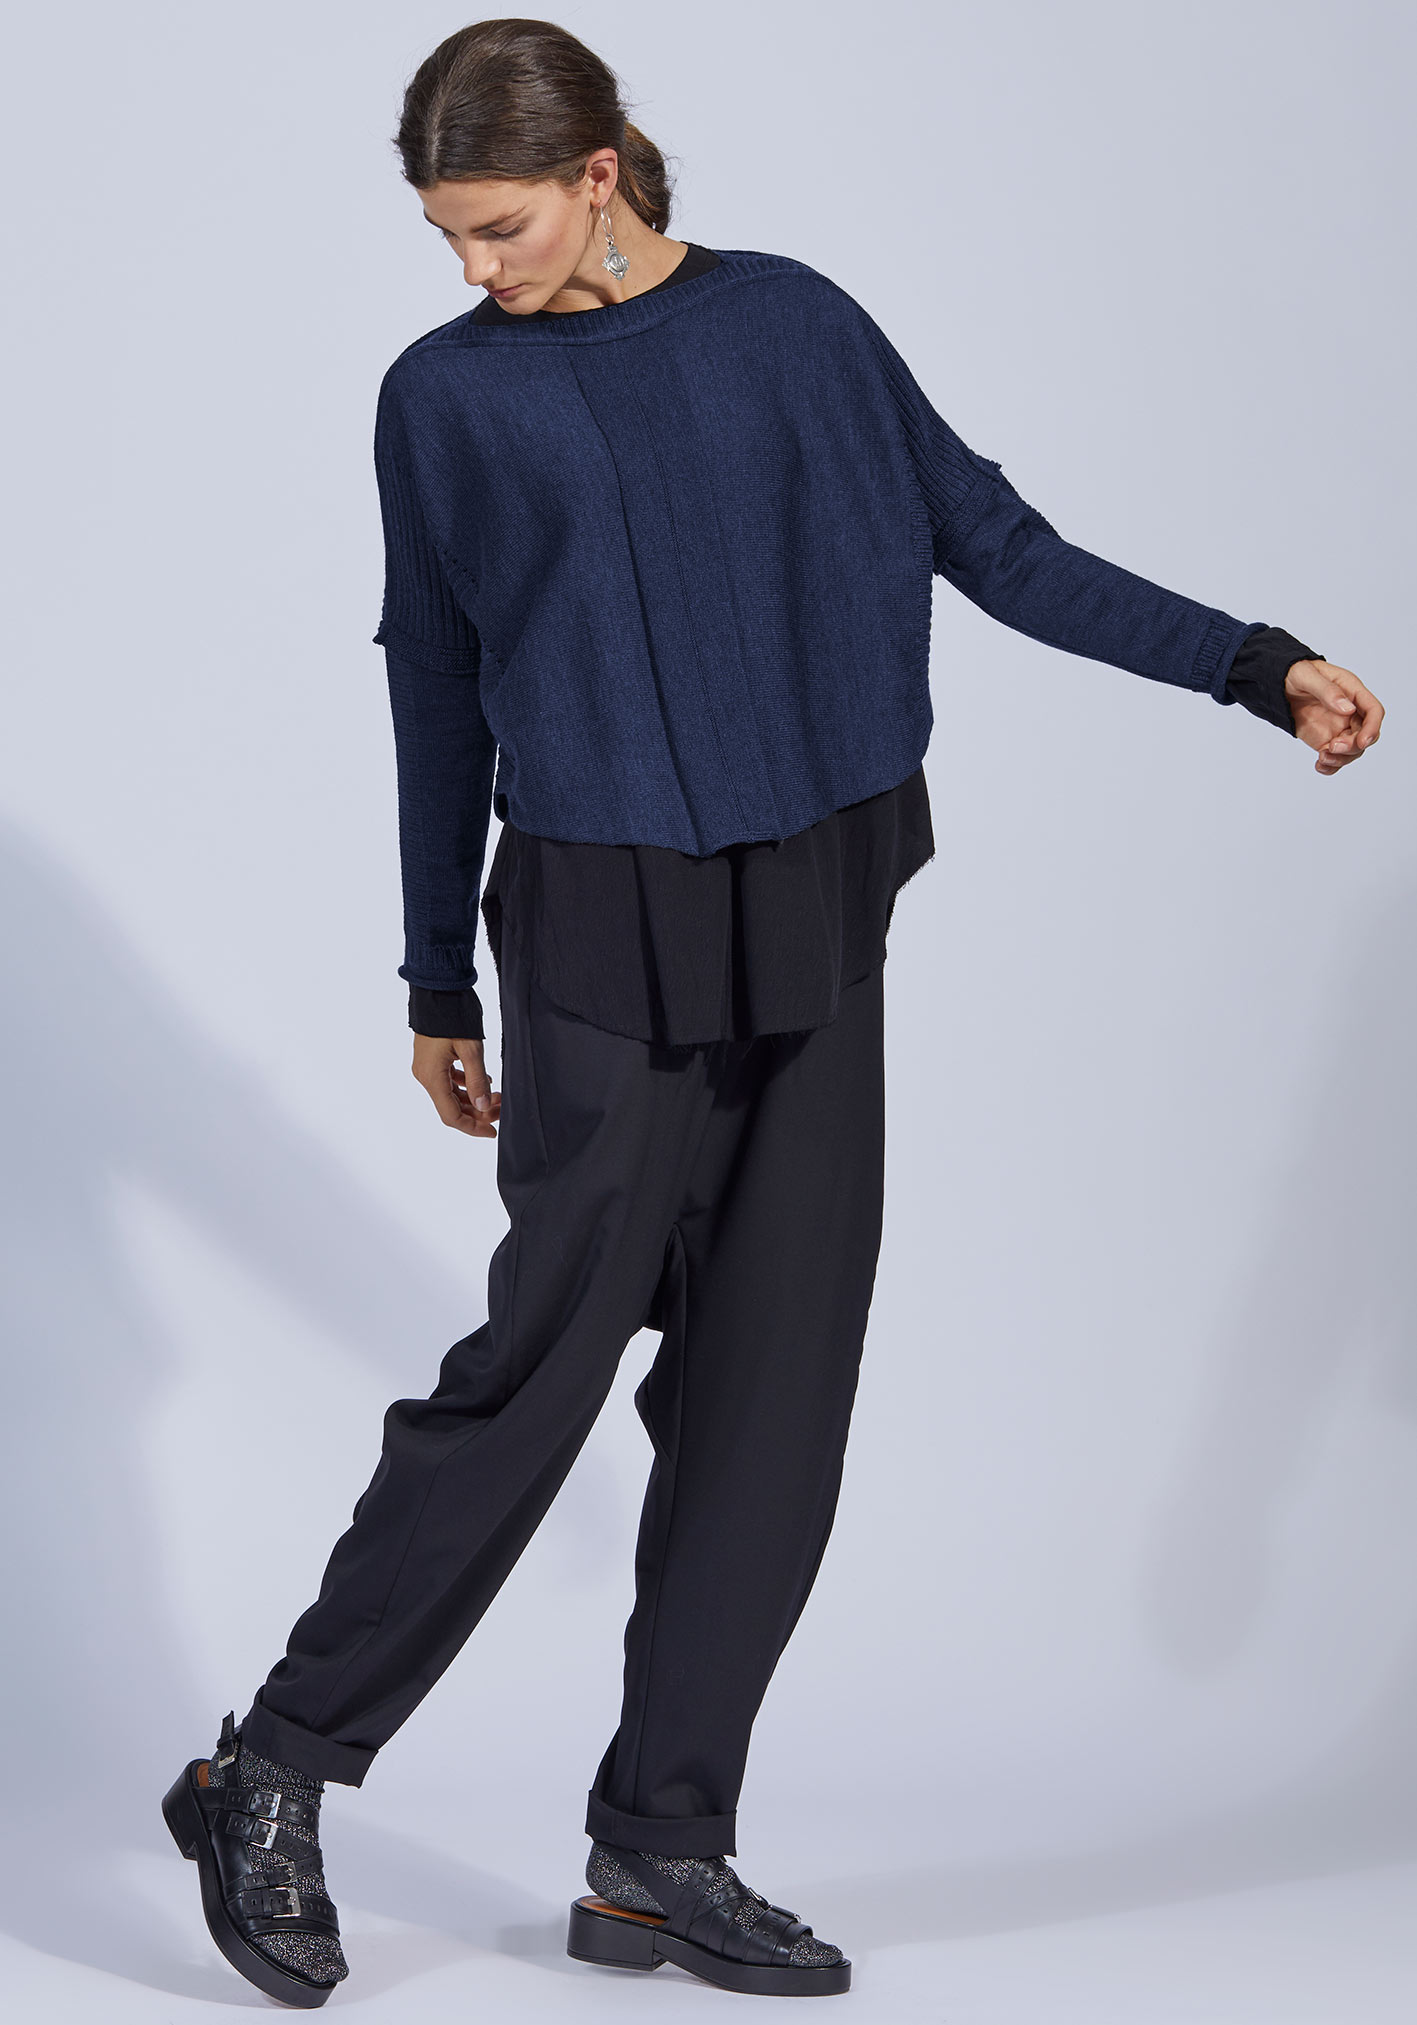 buy the latest Median Links Links Jumper online